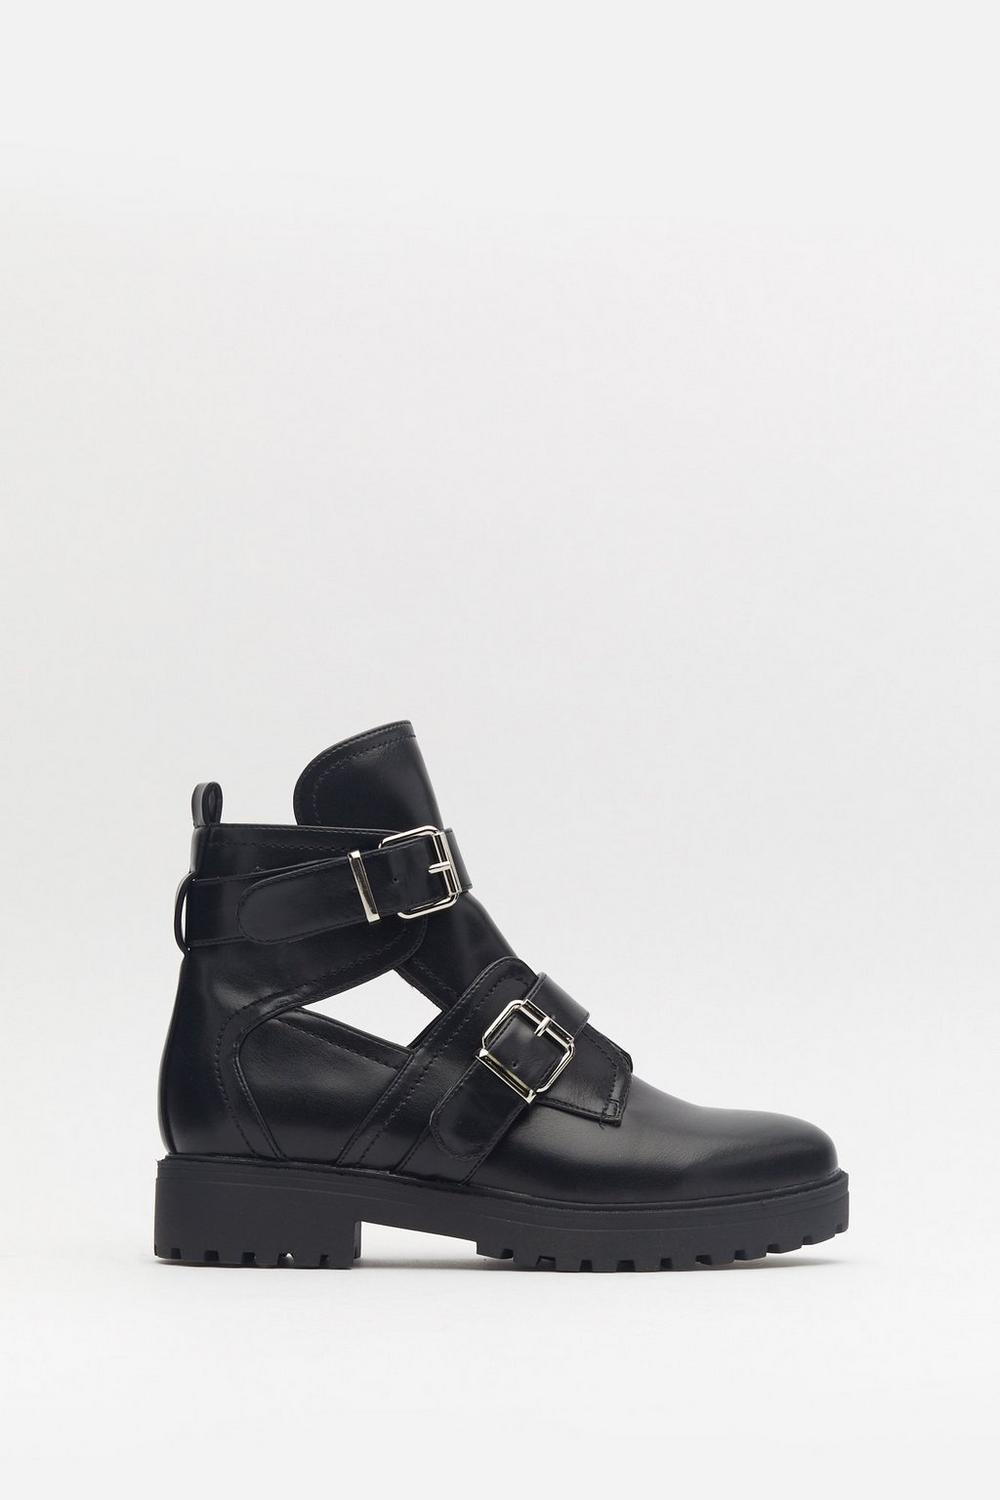 Double Buckle Cut Out Biker Boot by Nasty Gal